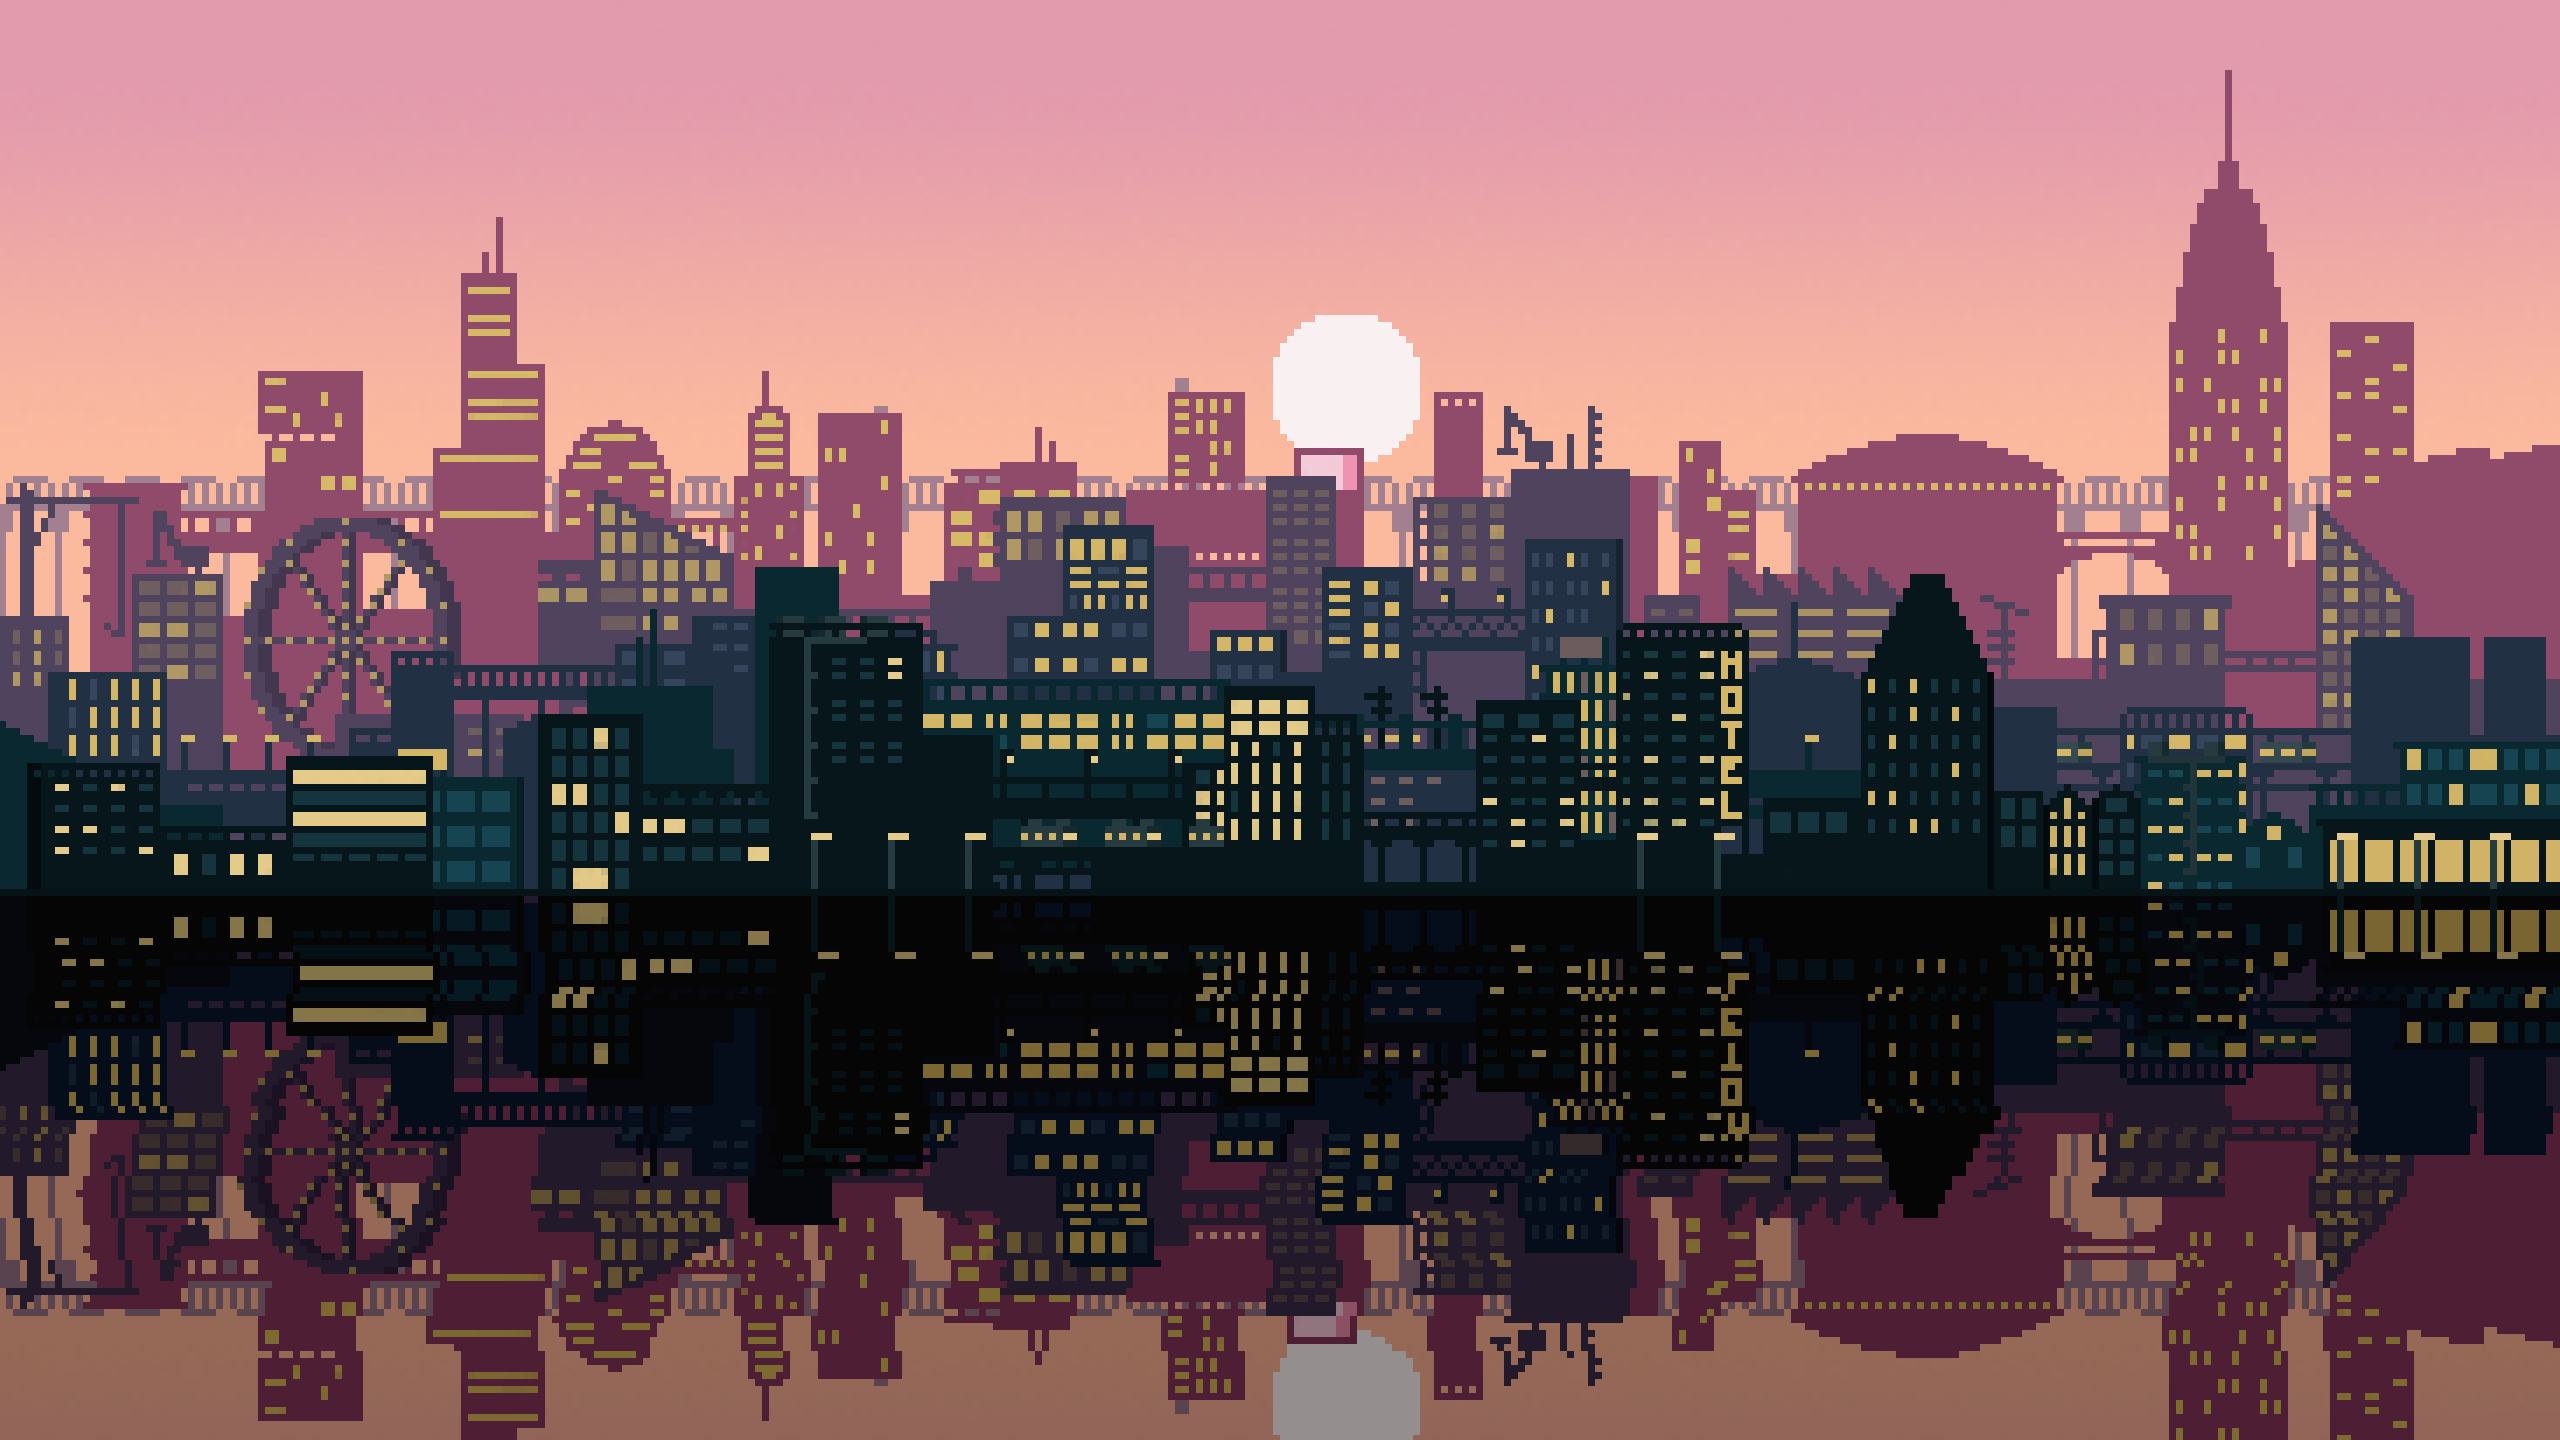 Pixel Art City [2560x1440][OC] | WALLPAPERS in 2019 ...